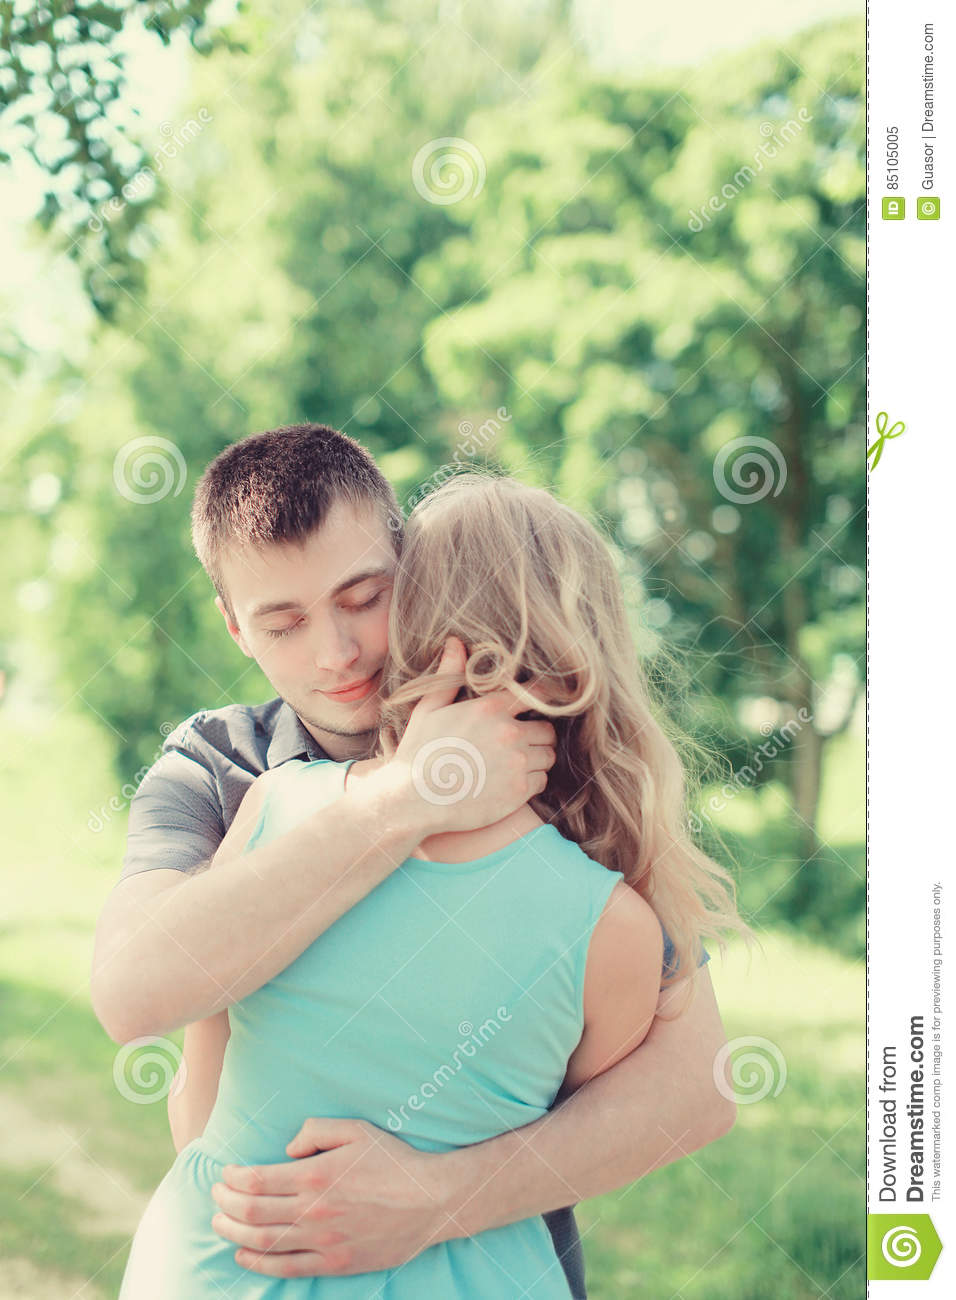 Lovely young couple in love, man embracing woman, warm feelings